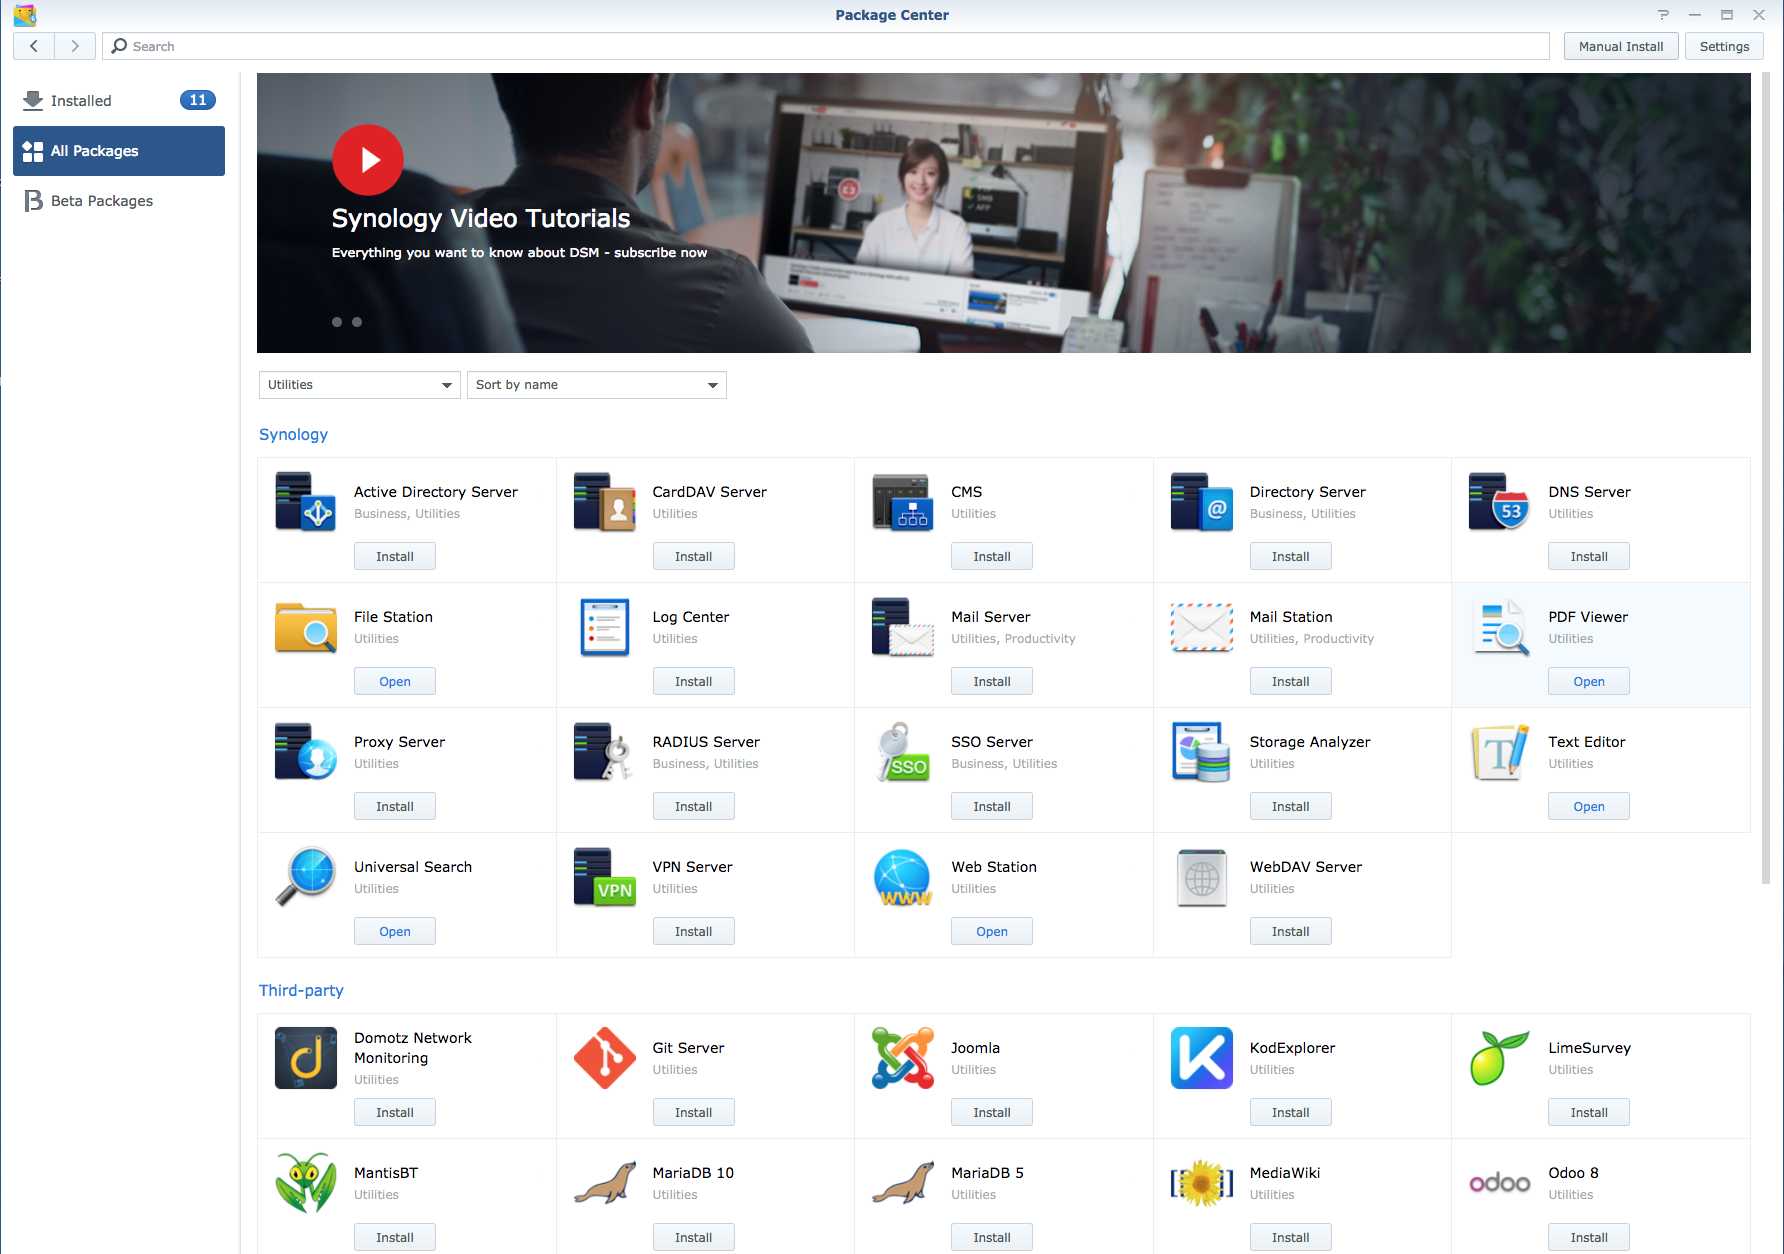 Synology DiskStation Manager Package Center screenshot